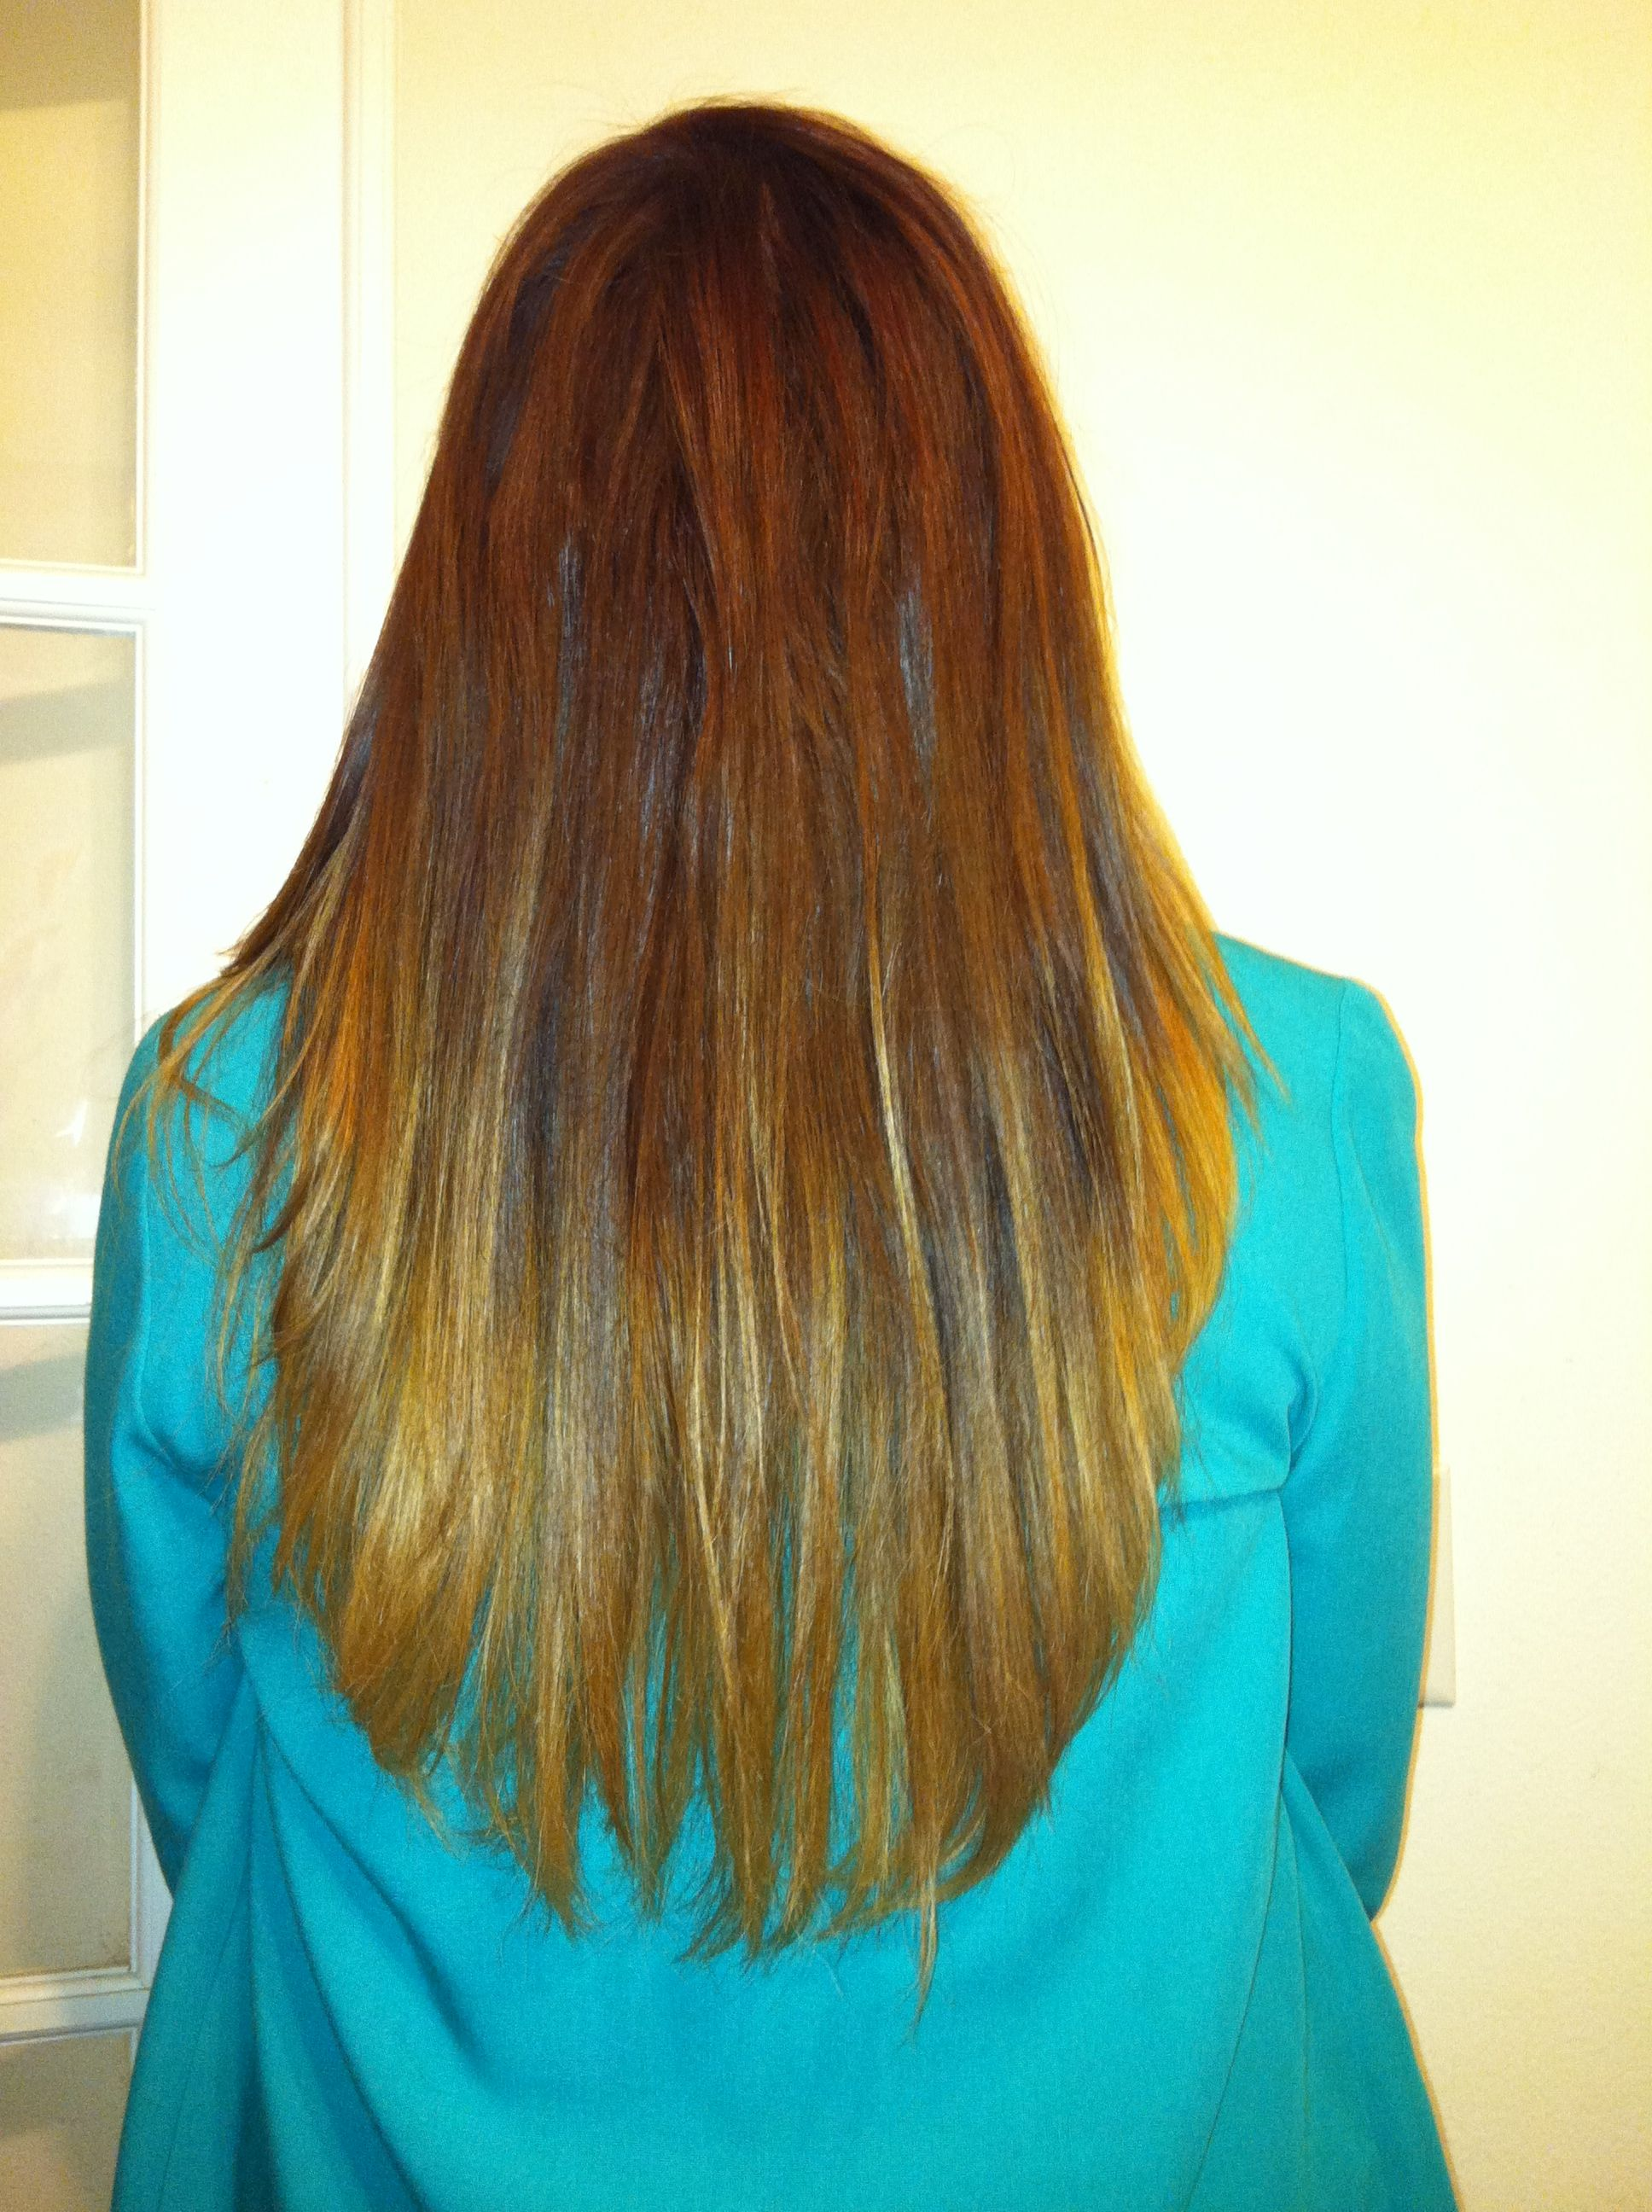 Red to blonde ombré done by Kelli ballou